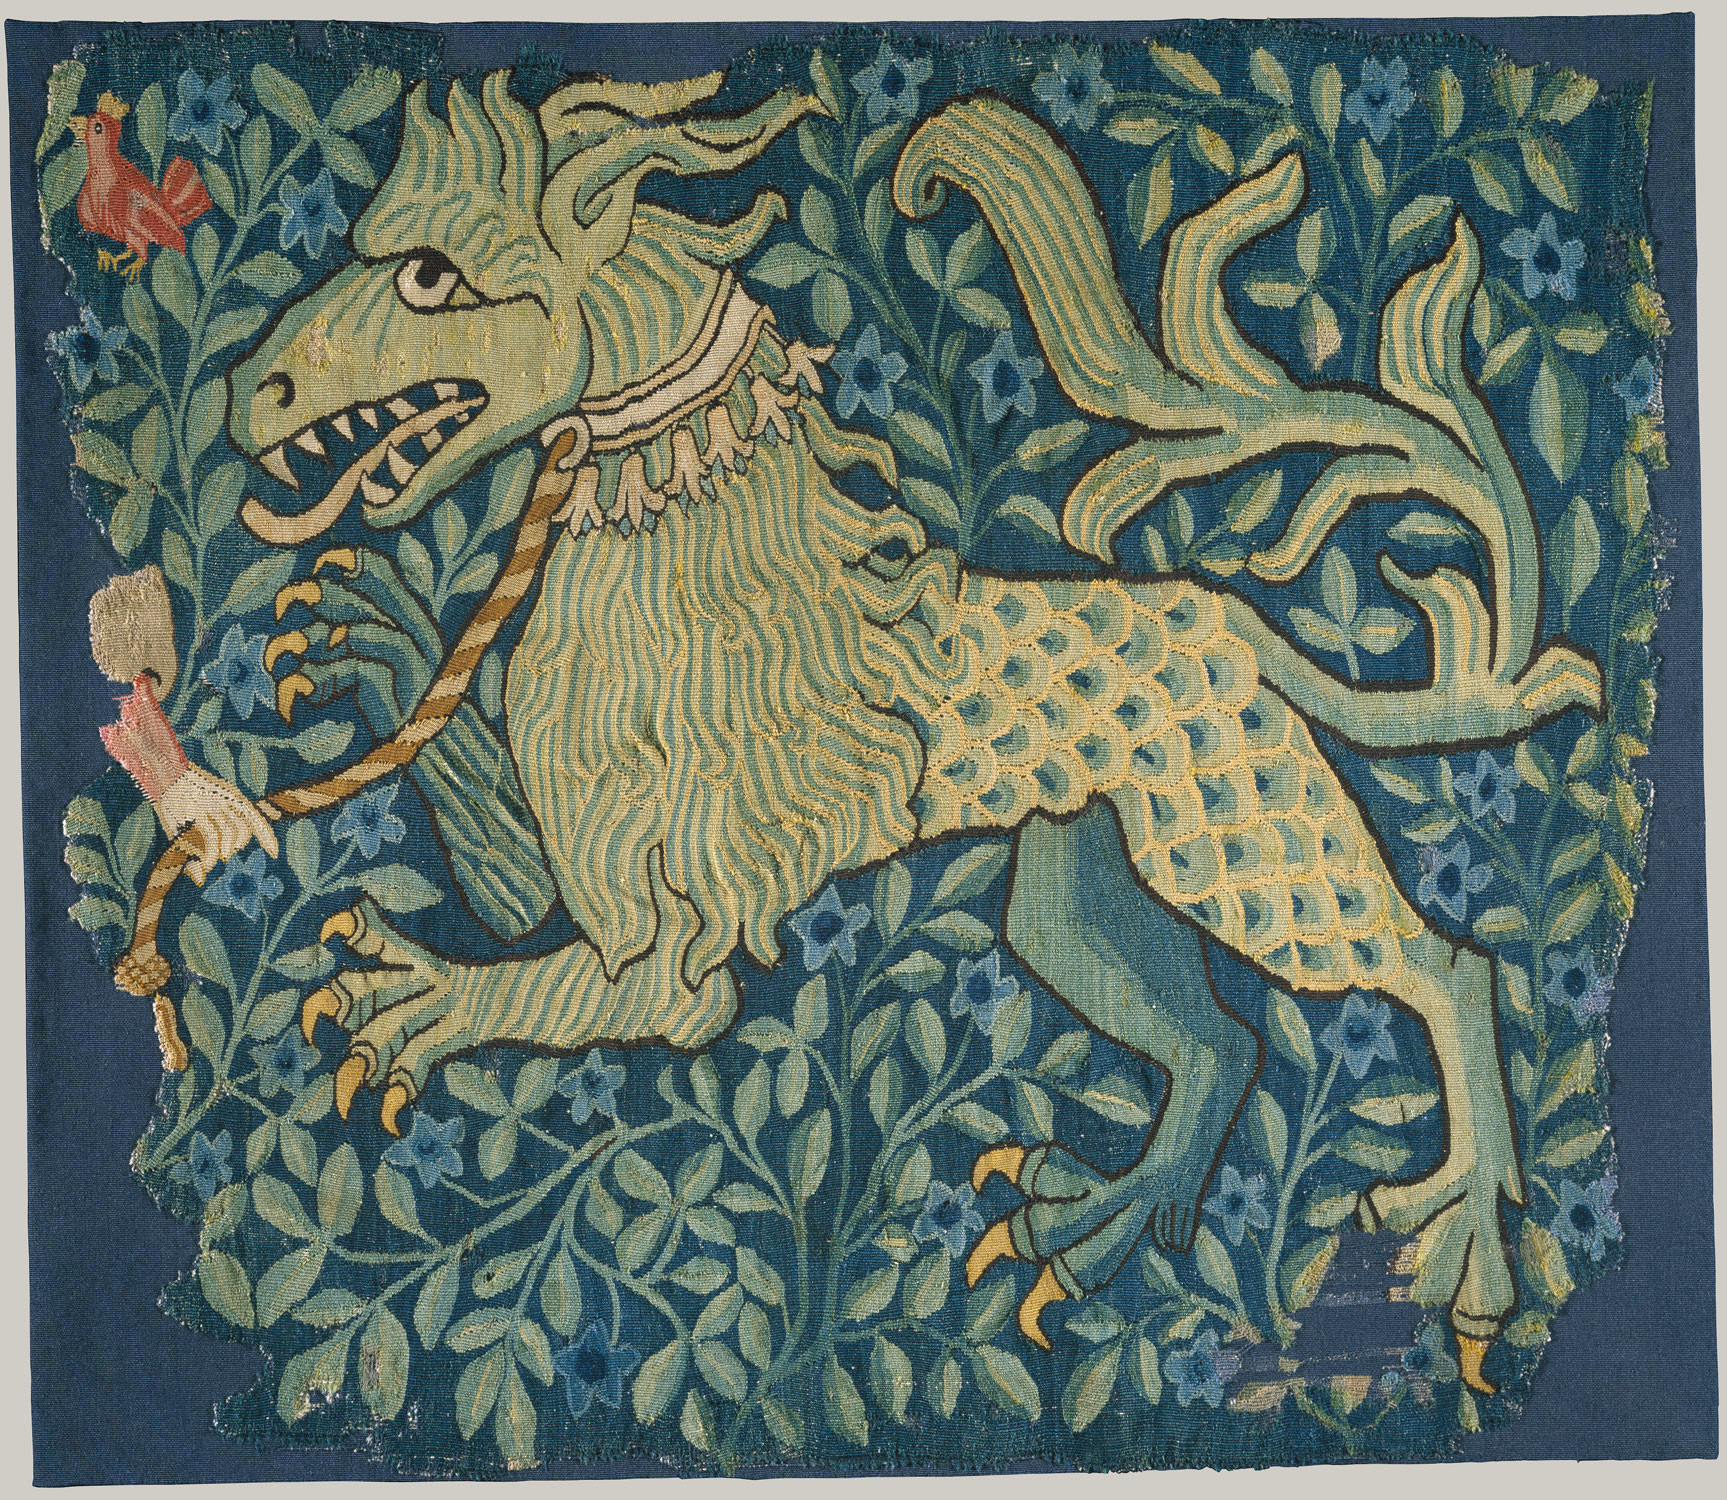 A Fabulous Beast (Fragment of a Tapestry)